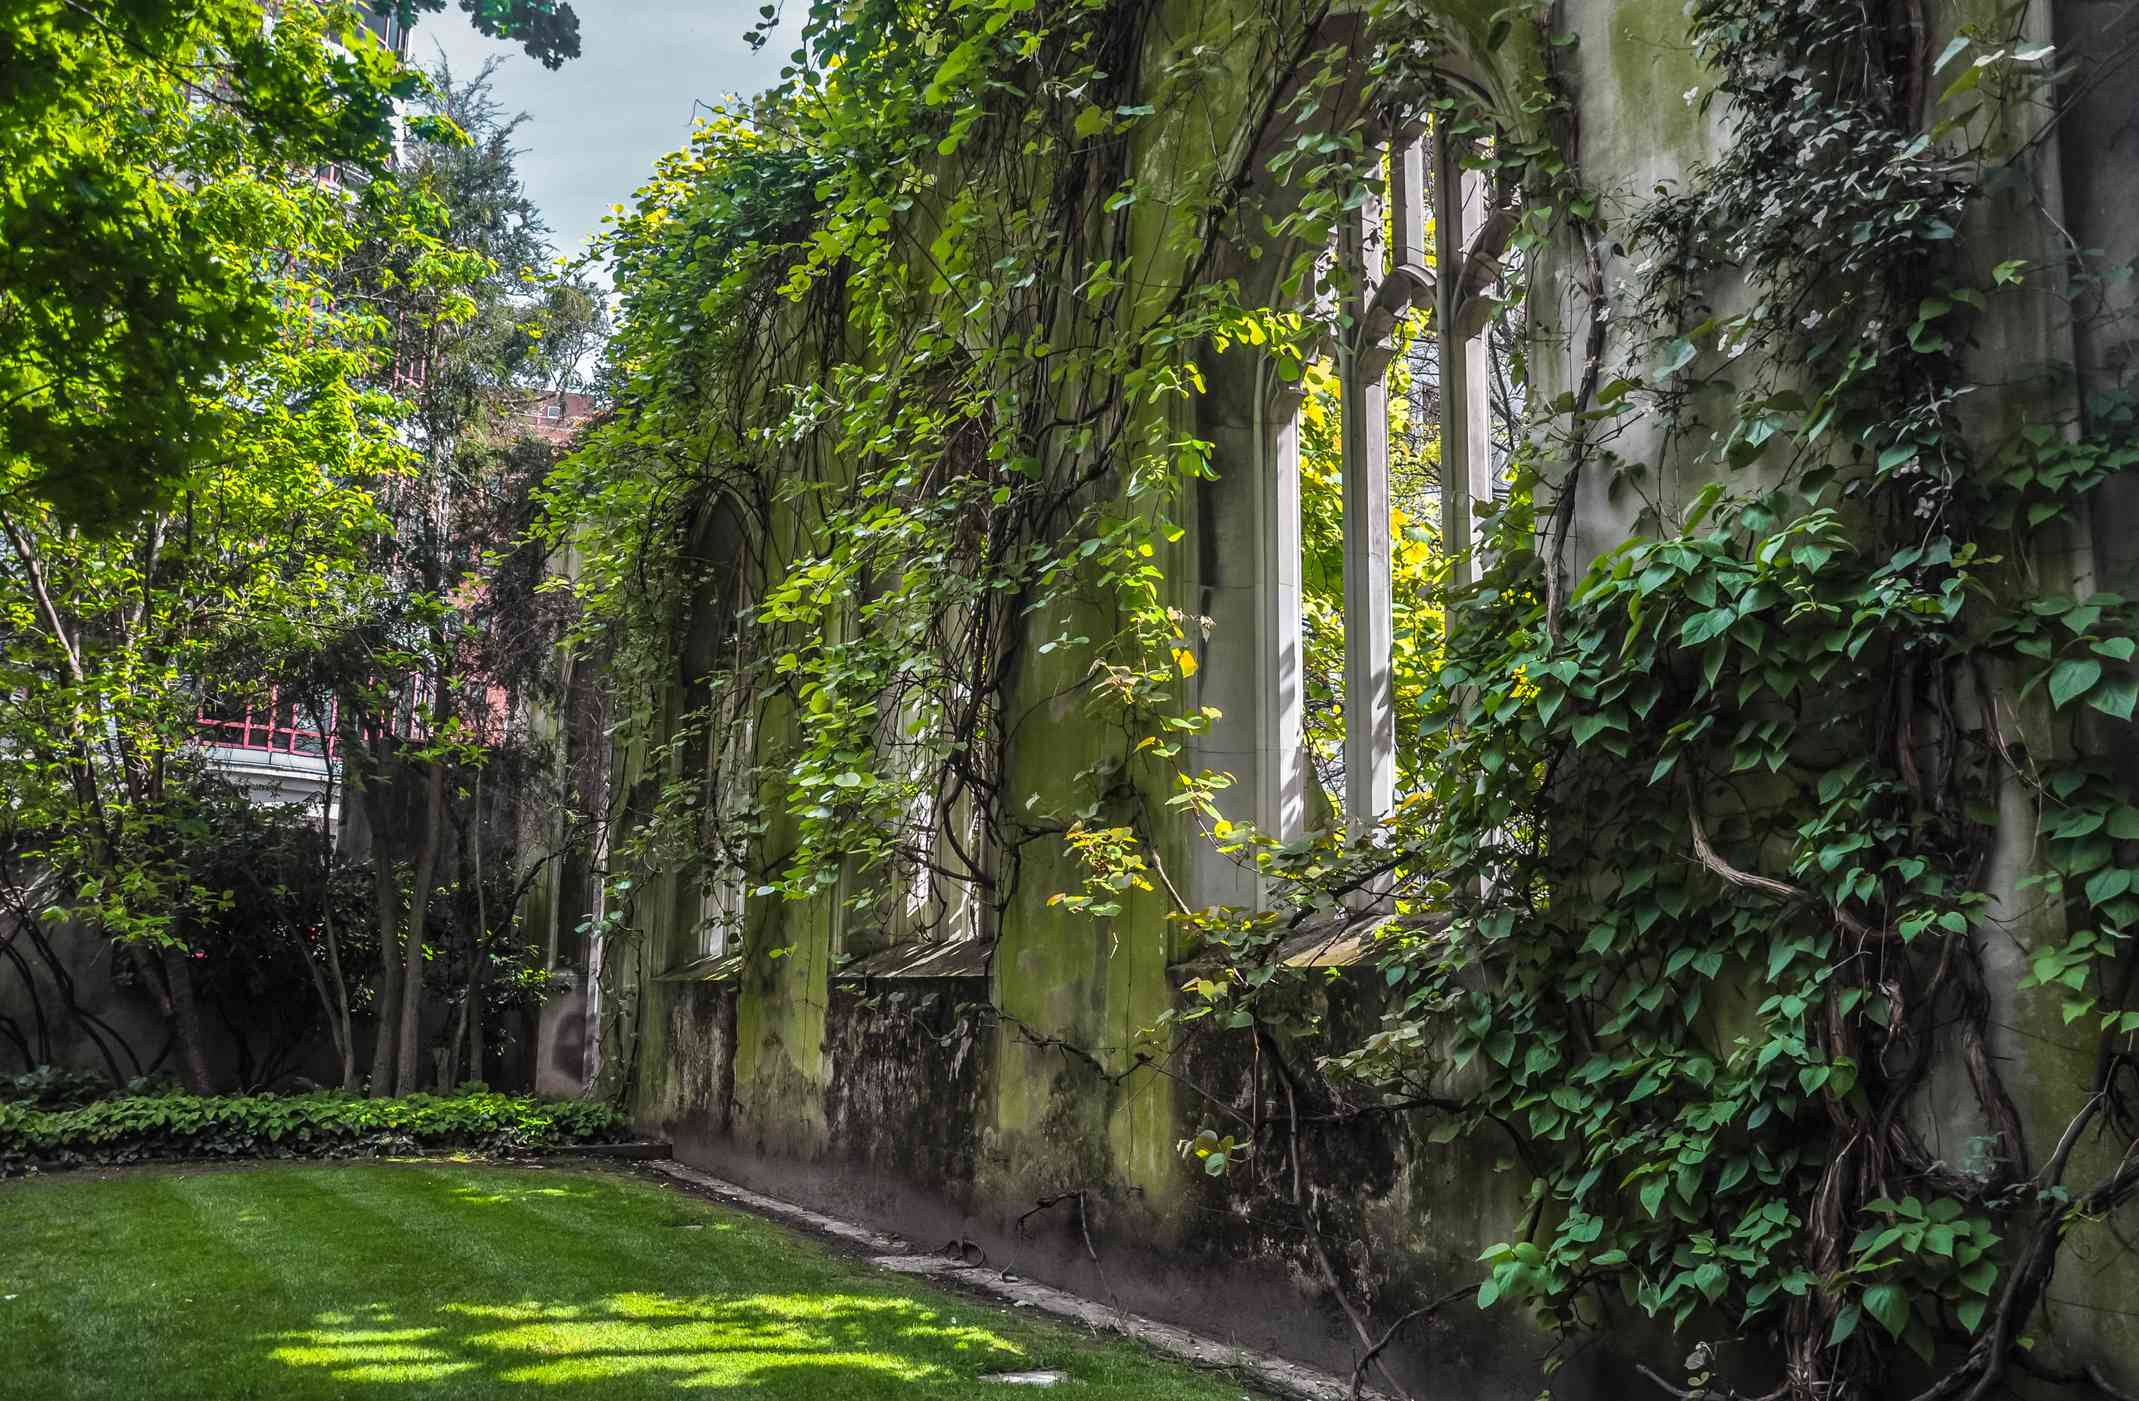 the ruins of St Dunstan-in-the-East Church covered in green plants and vines and a green lawn